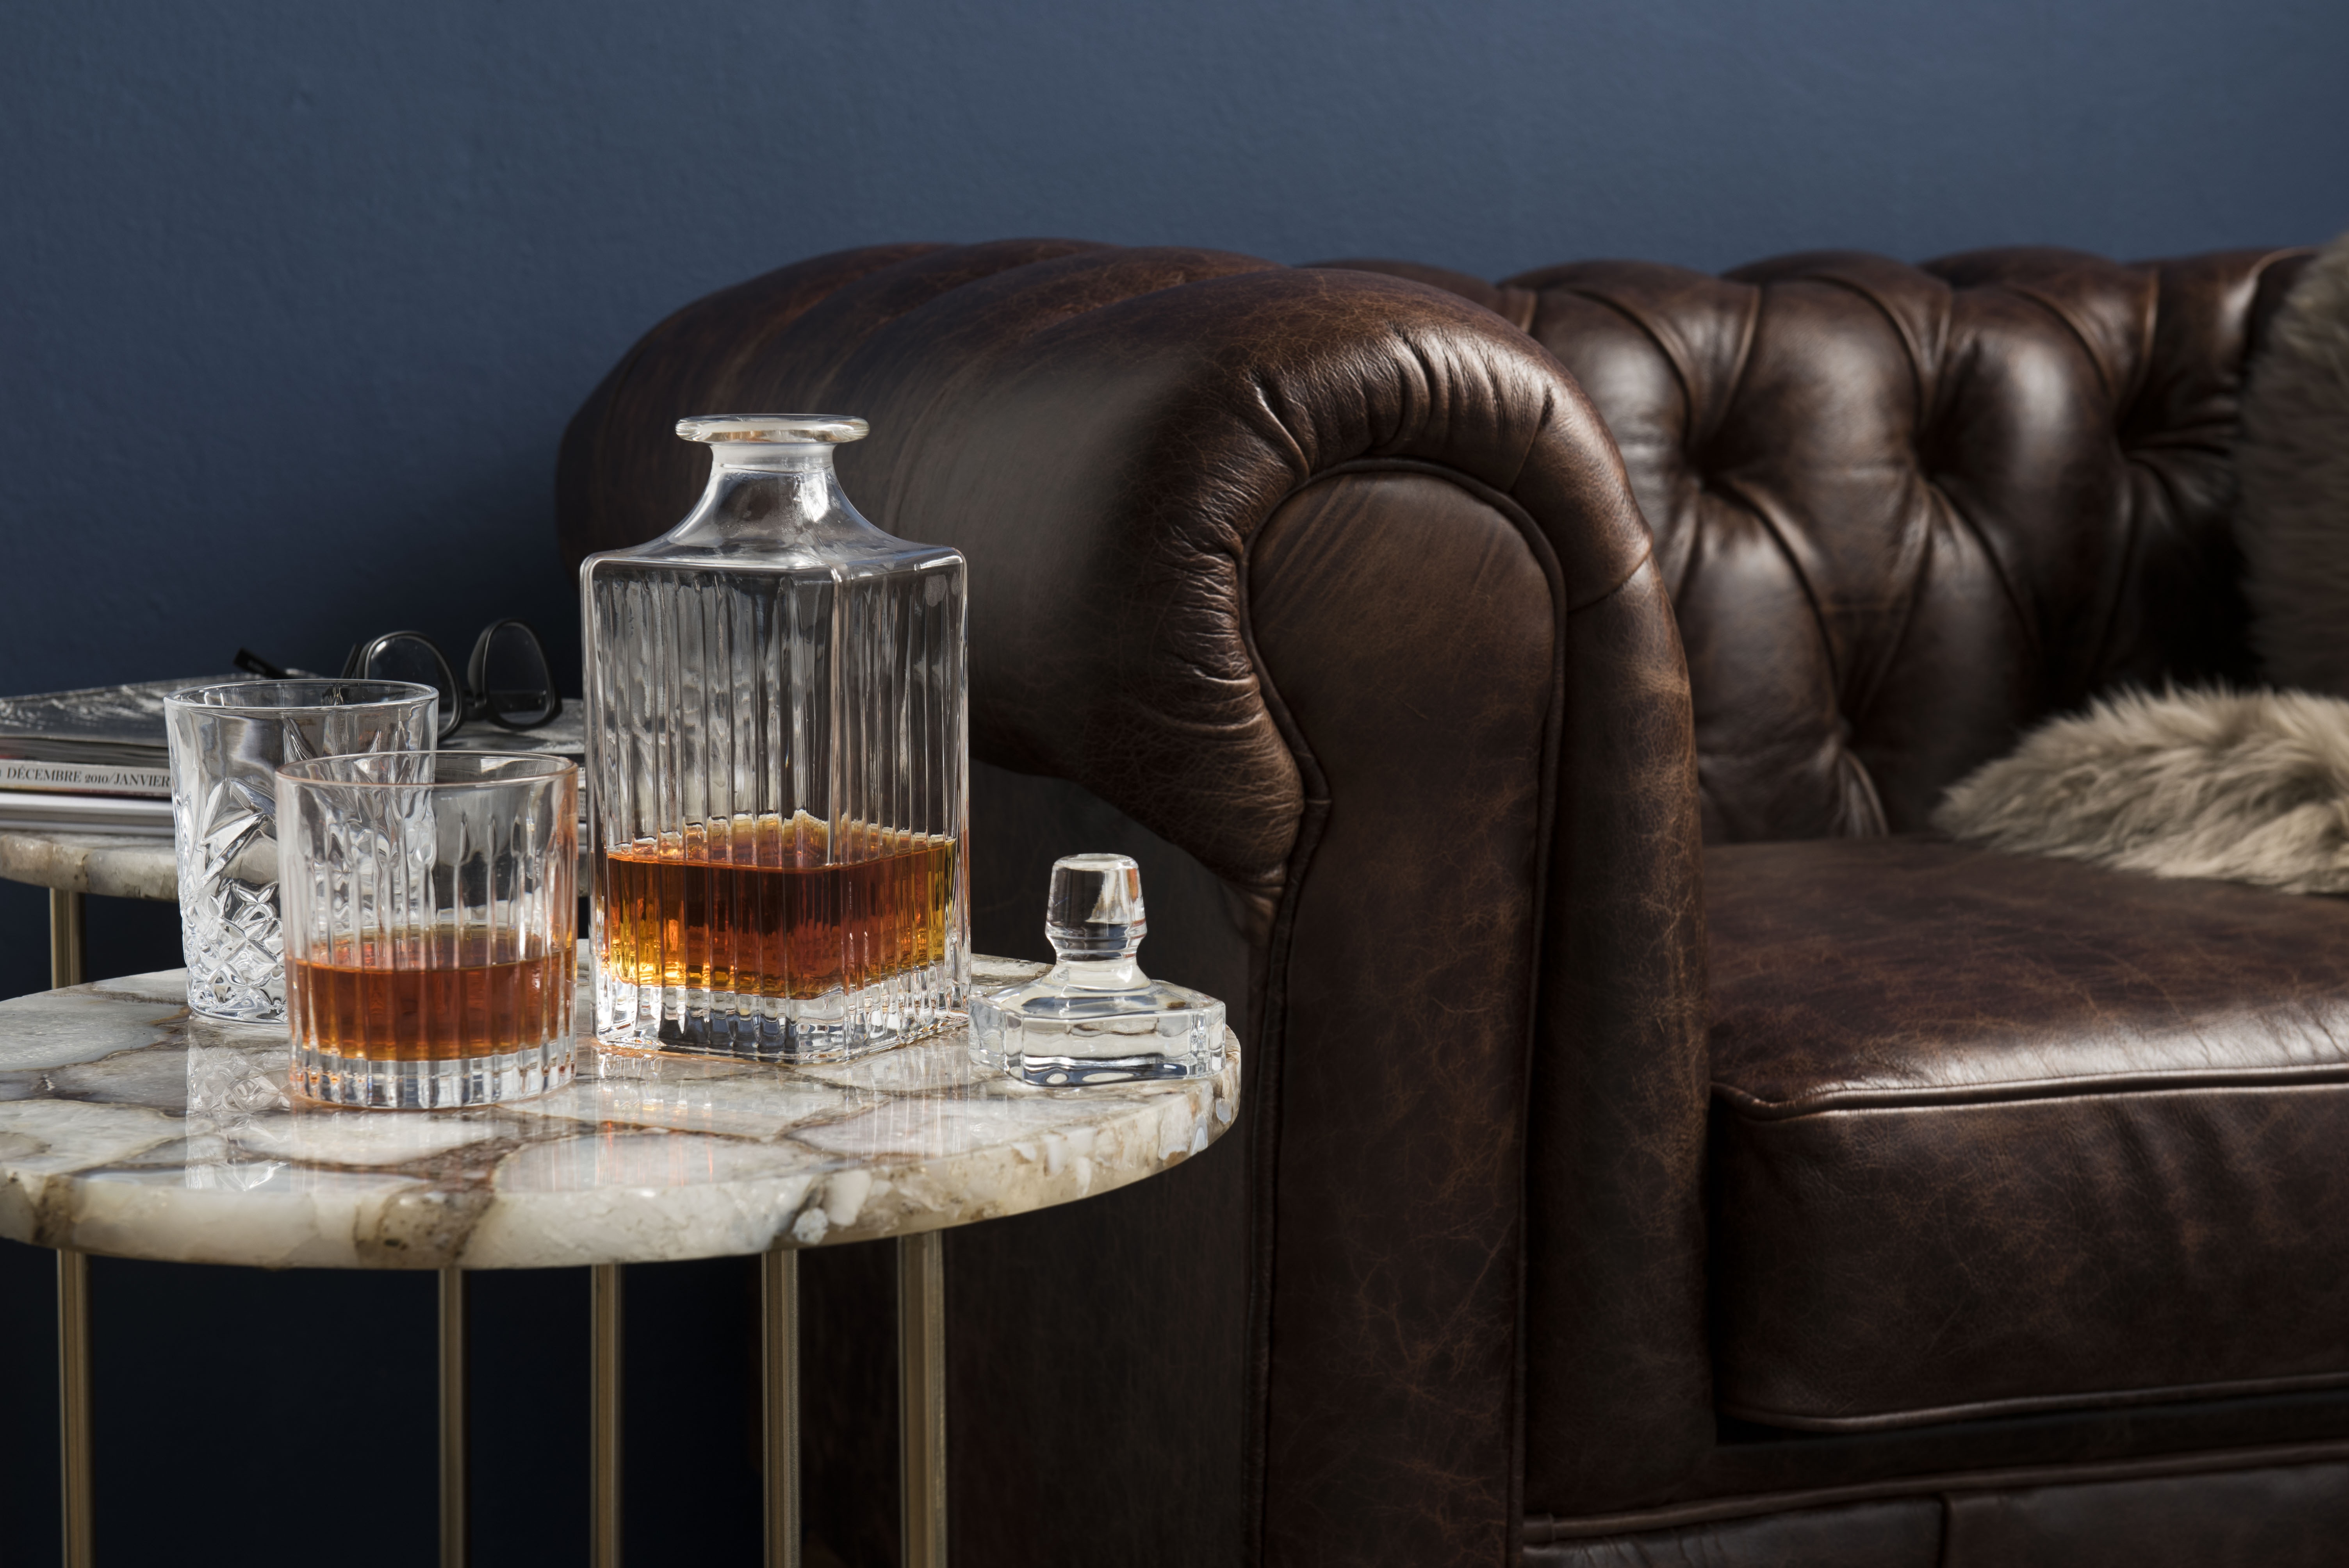 FROM SCOTCH TO BOURBON TO RYE: KNOW YOUR WHISKIES